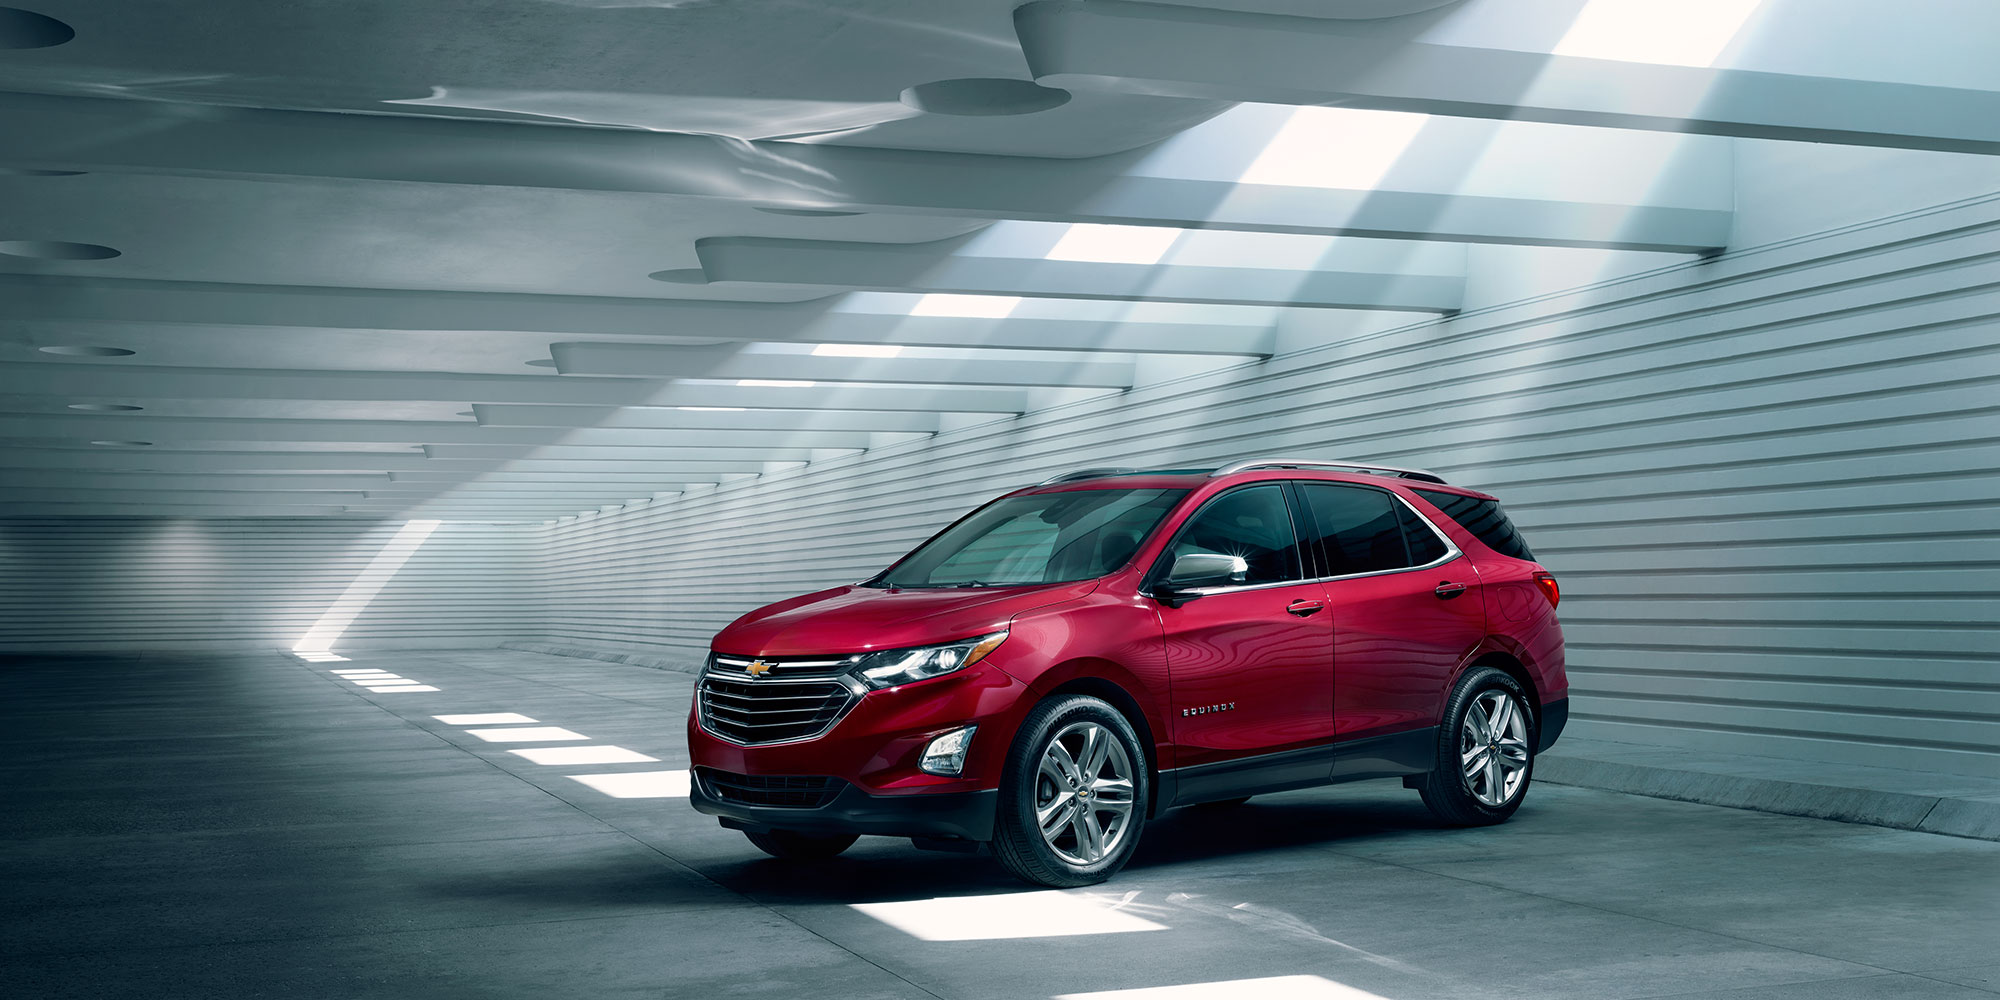 New 2018 Chevrolet Equinox